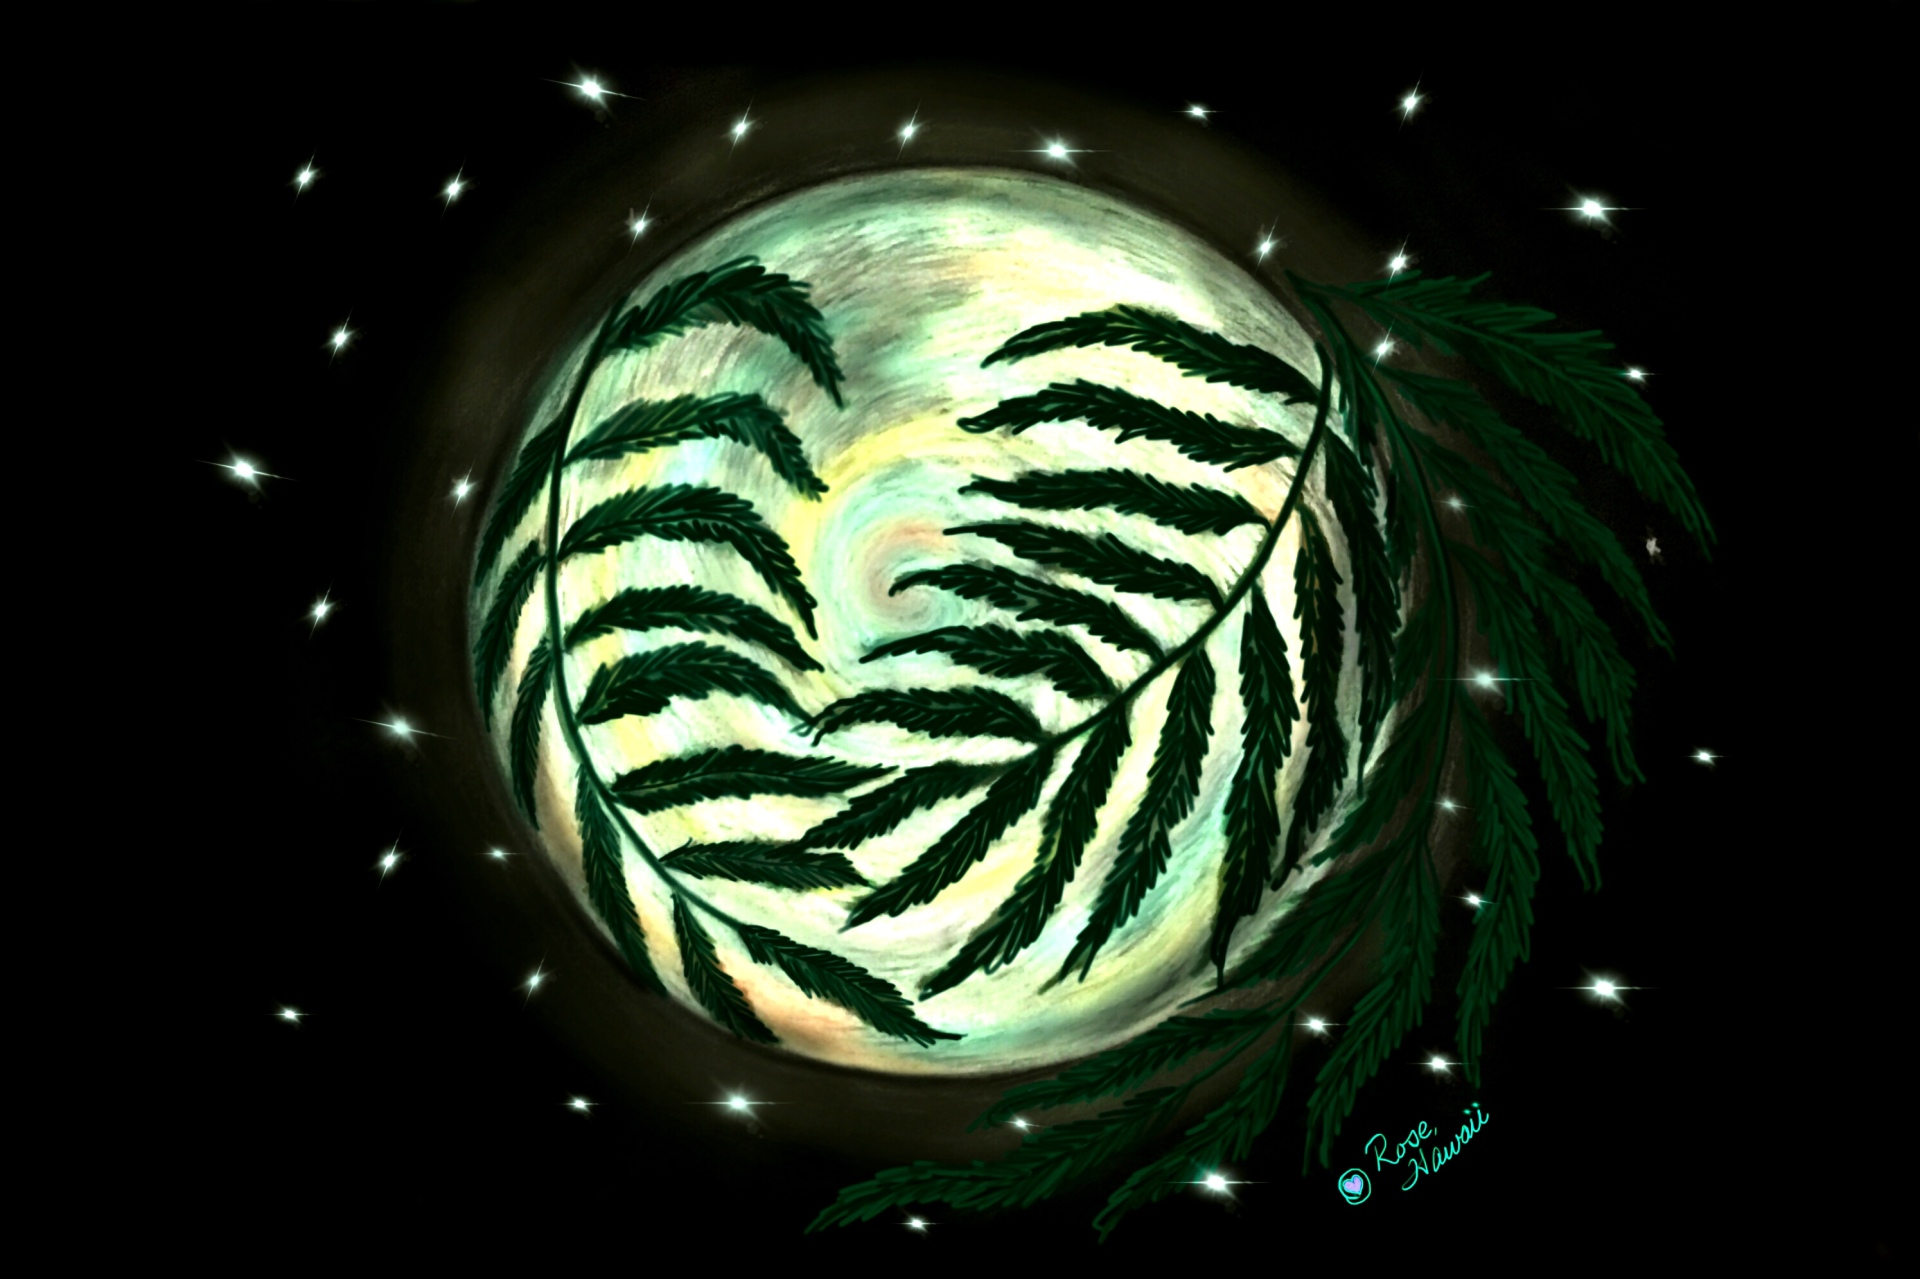 Full moon through ferns on black